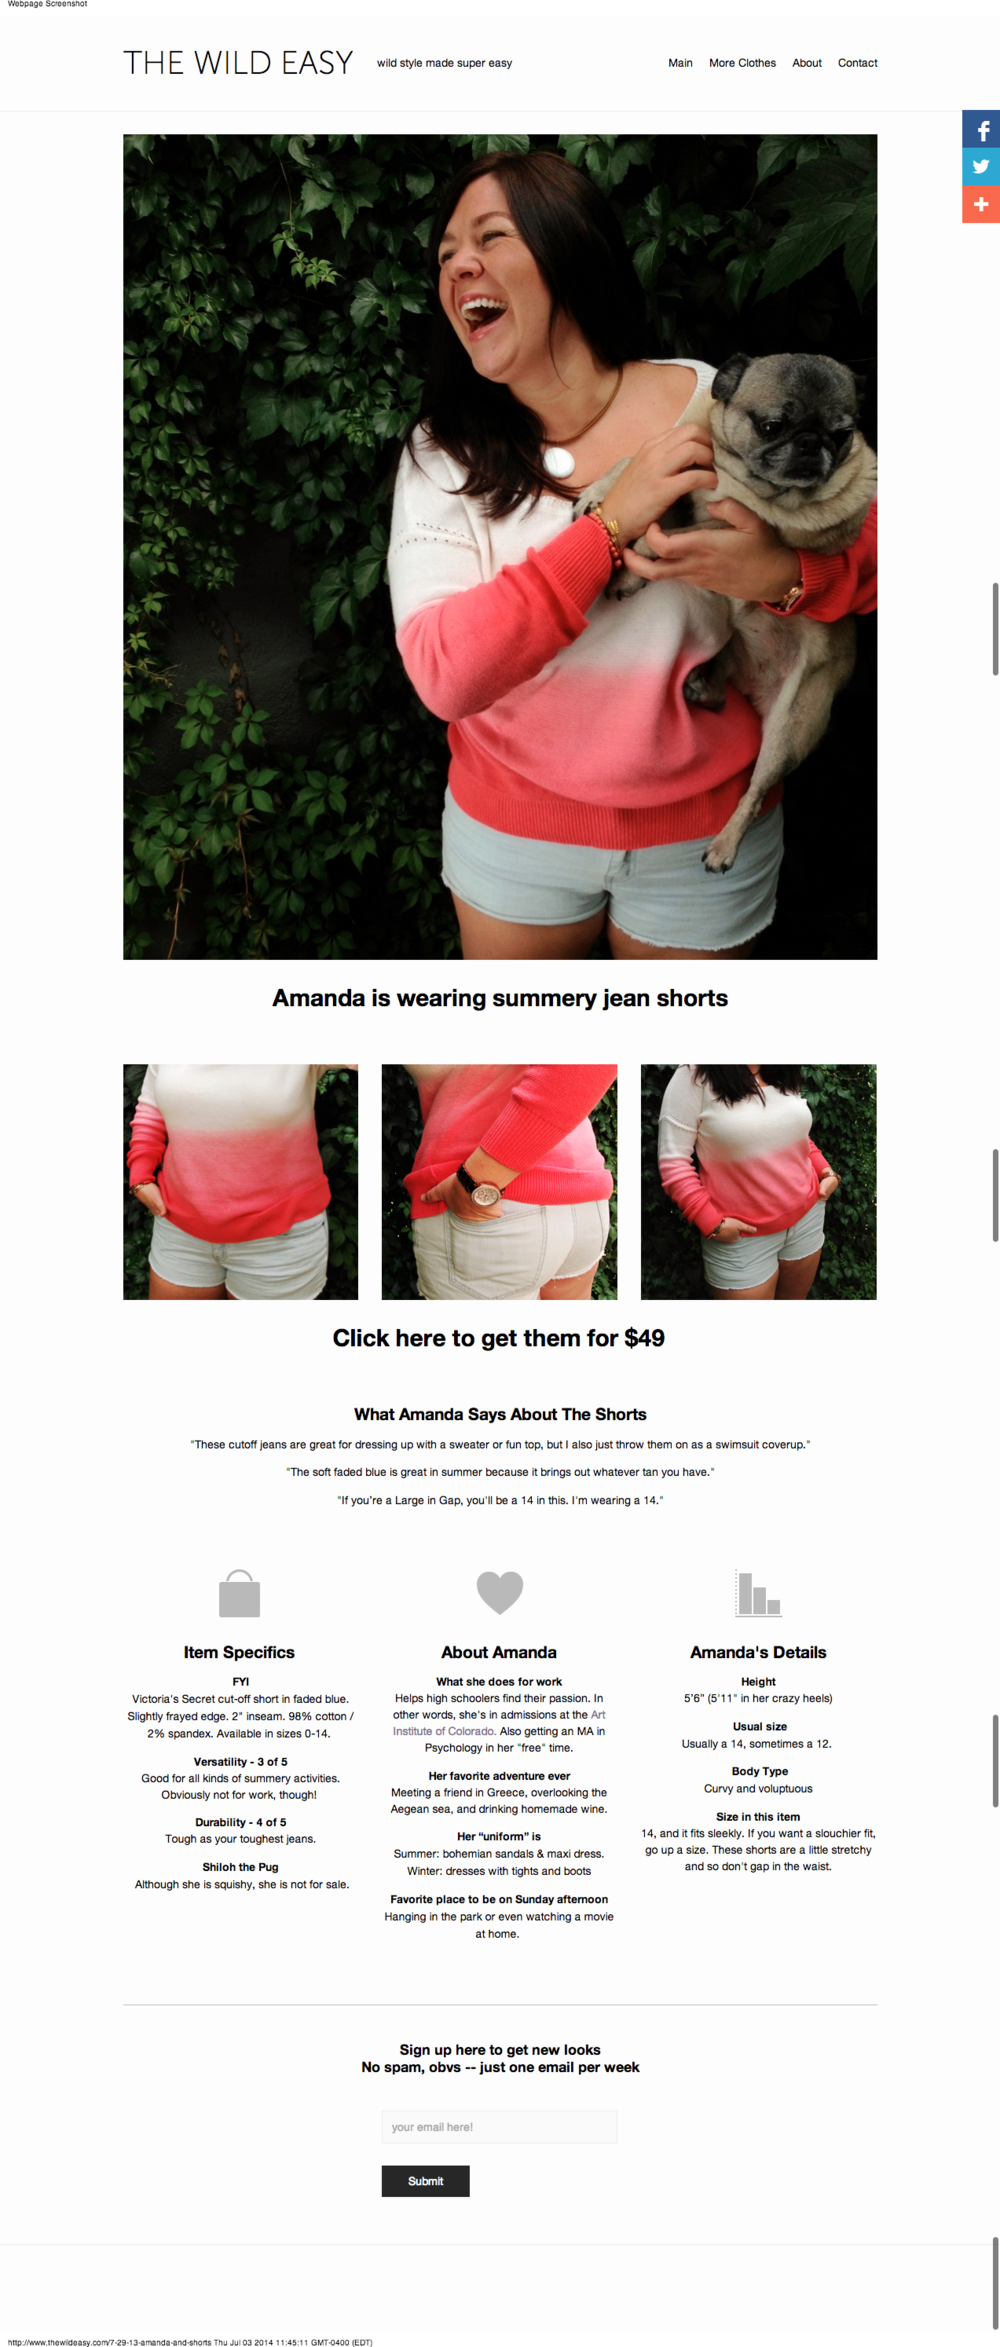 7-29-13 Amanda and Shorts — THE WILD EASY copy.png